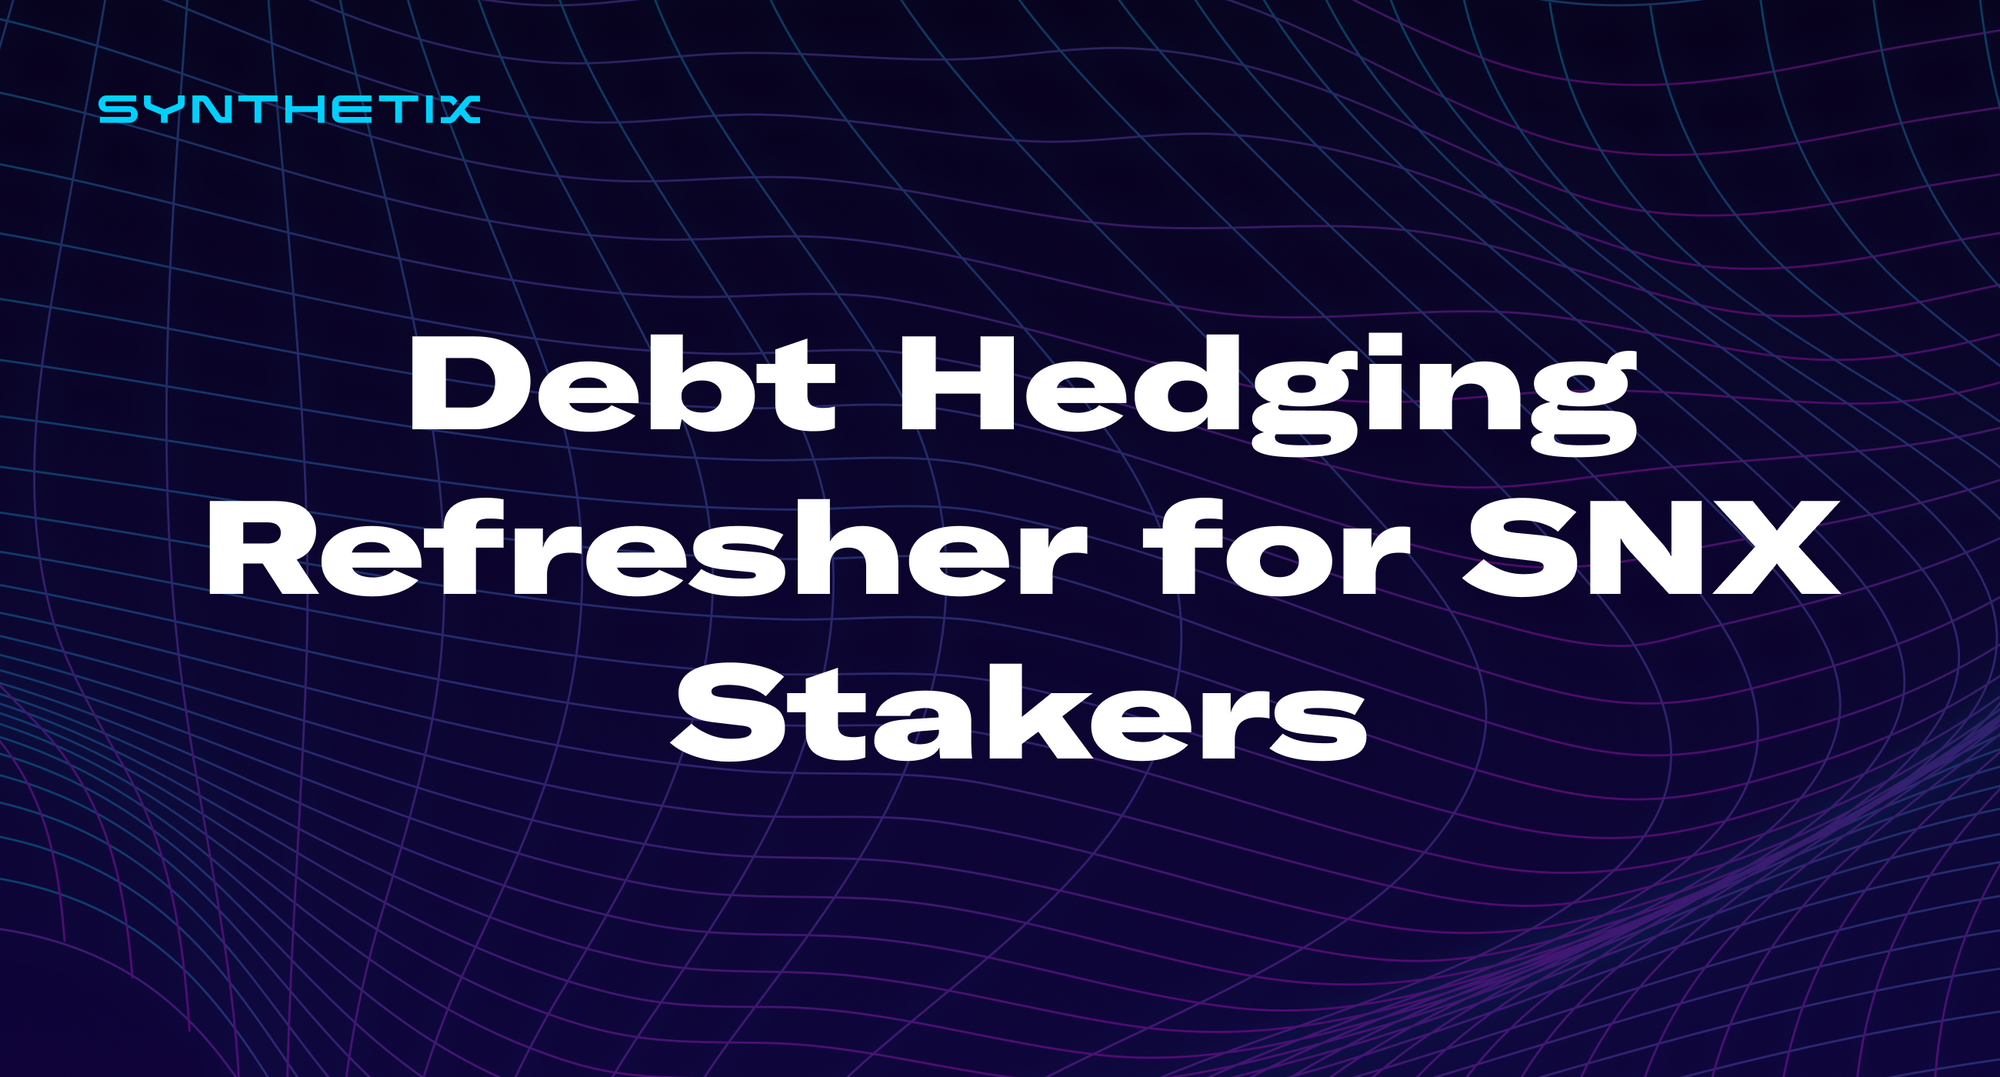 Debt Hedging Refresher for SNX Stakers